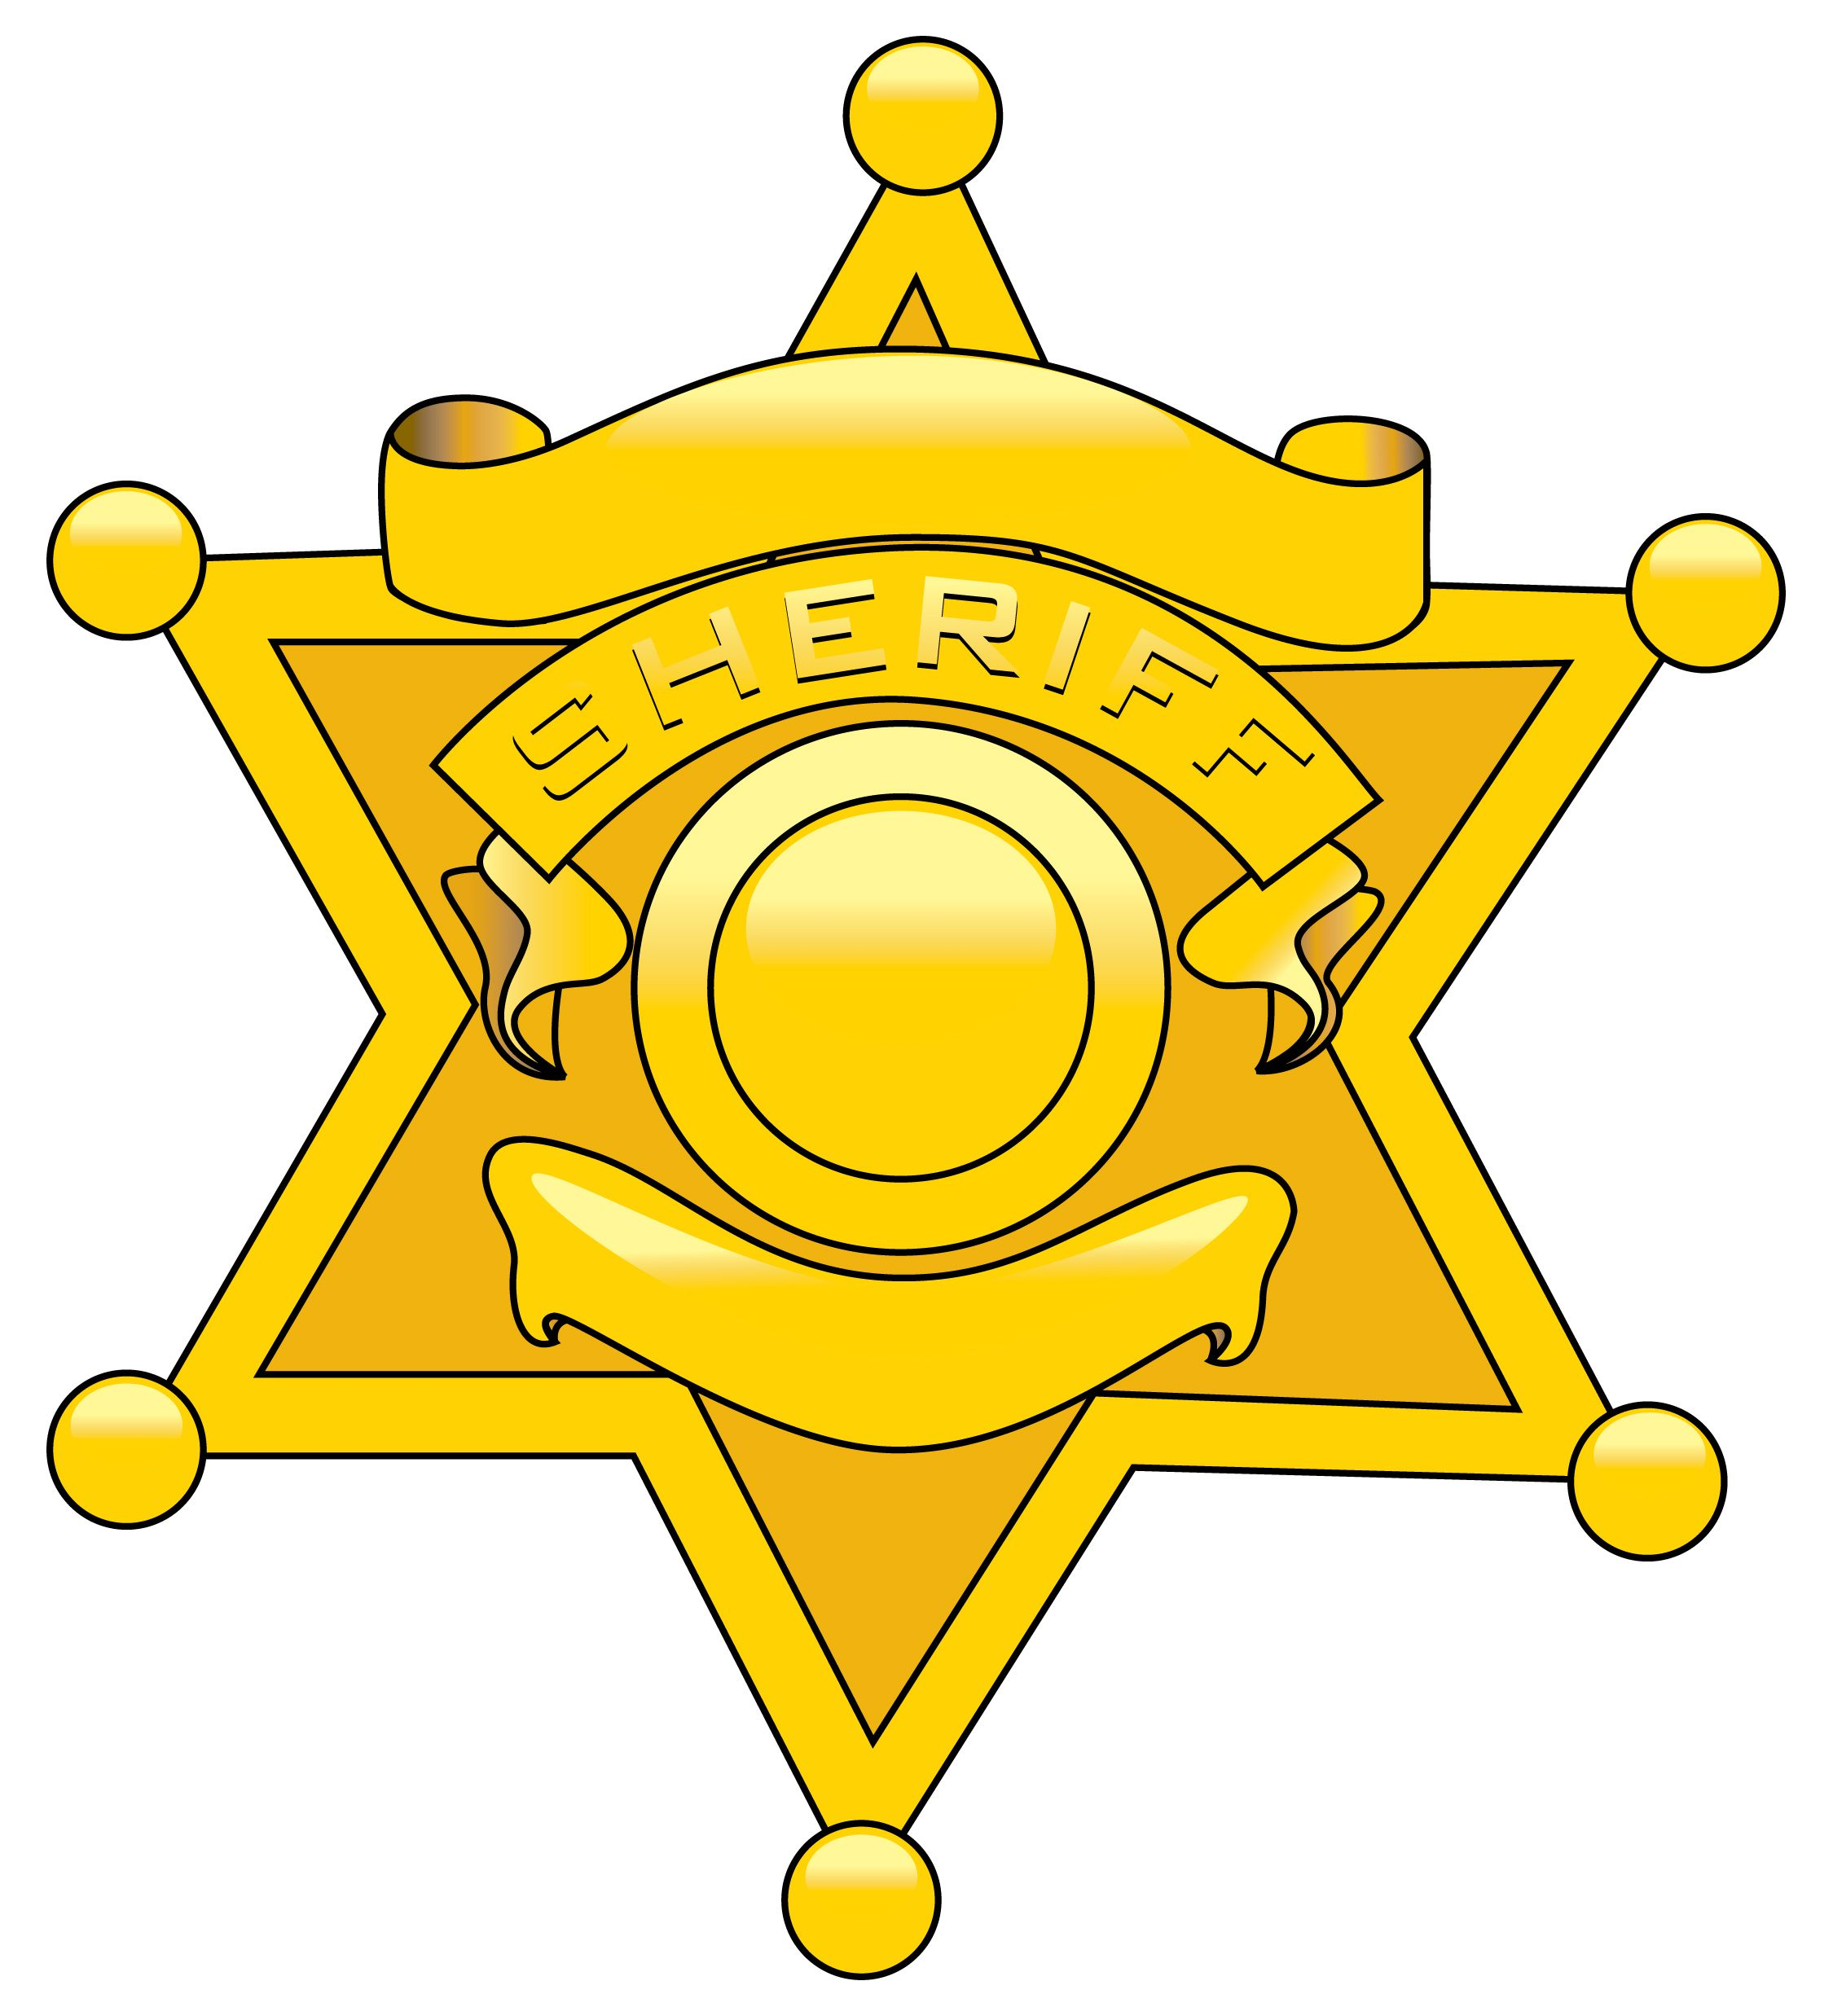 Sheriff badge gallery for police cartoon badge clipart.